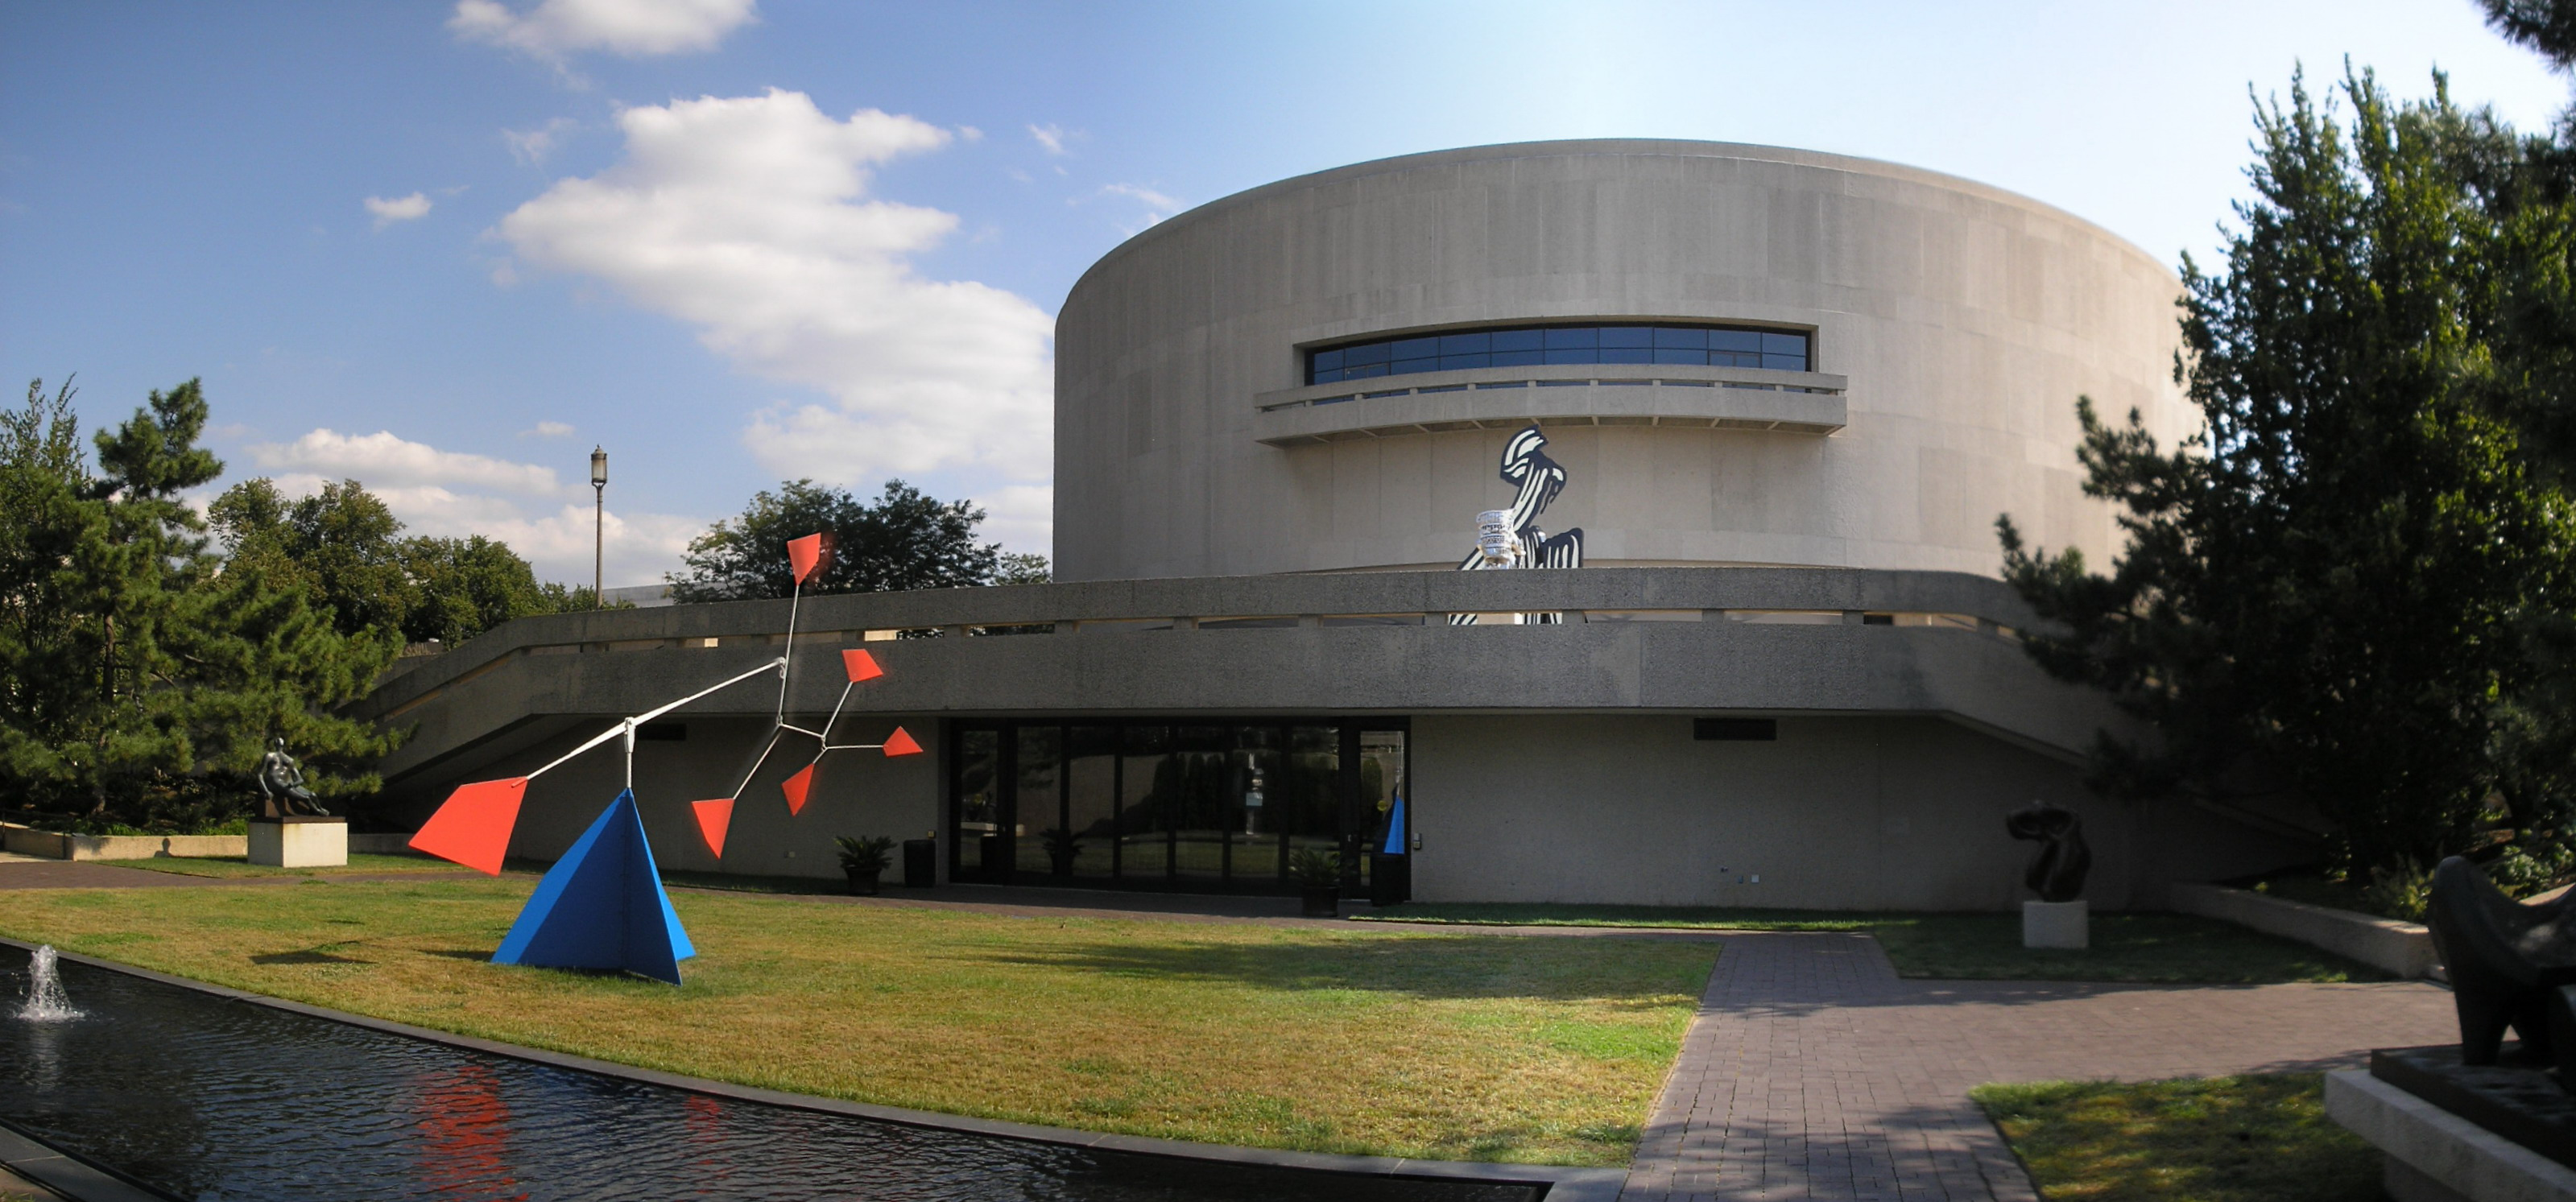 Take A Walk Through Hirshhorn Museum And Sculpture Garden In Washington D C Photos Places